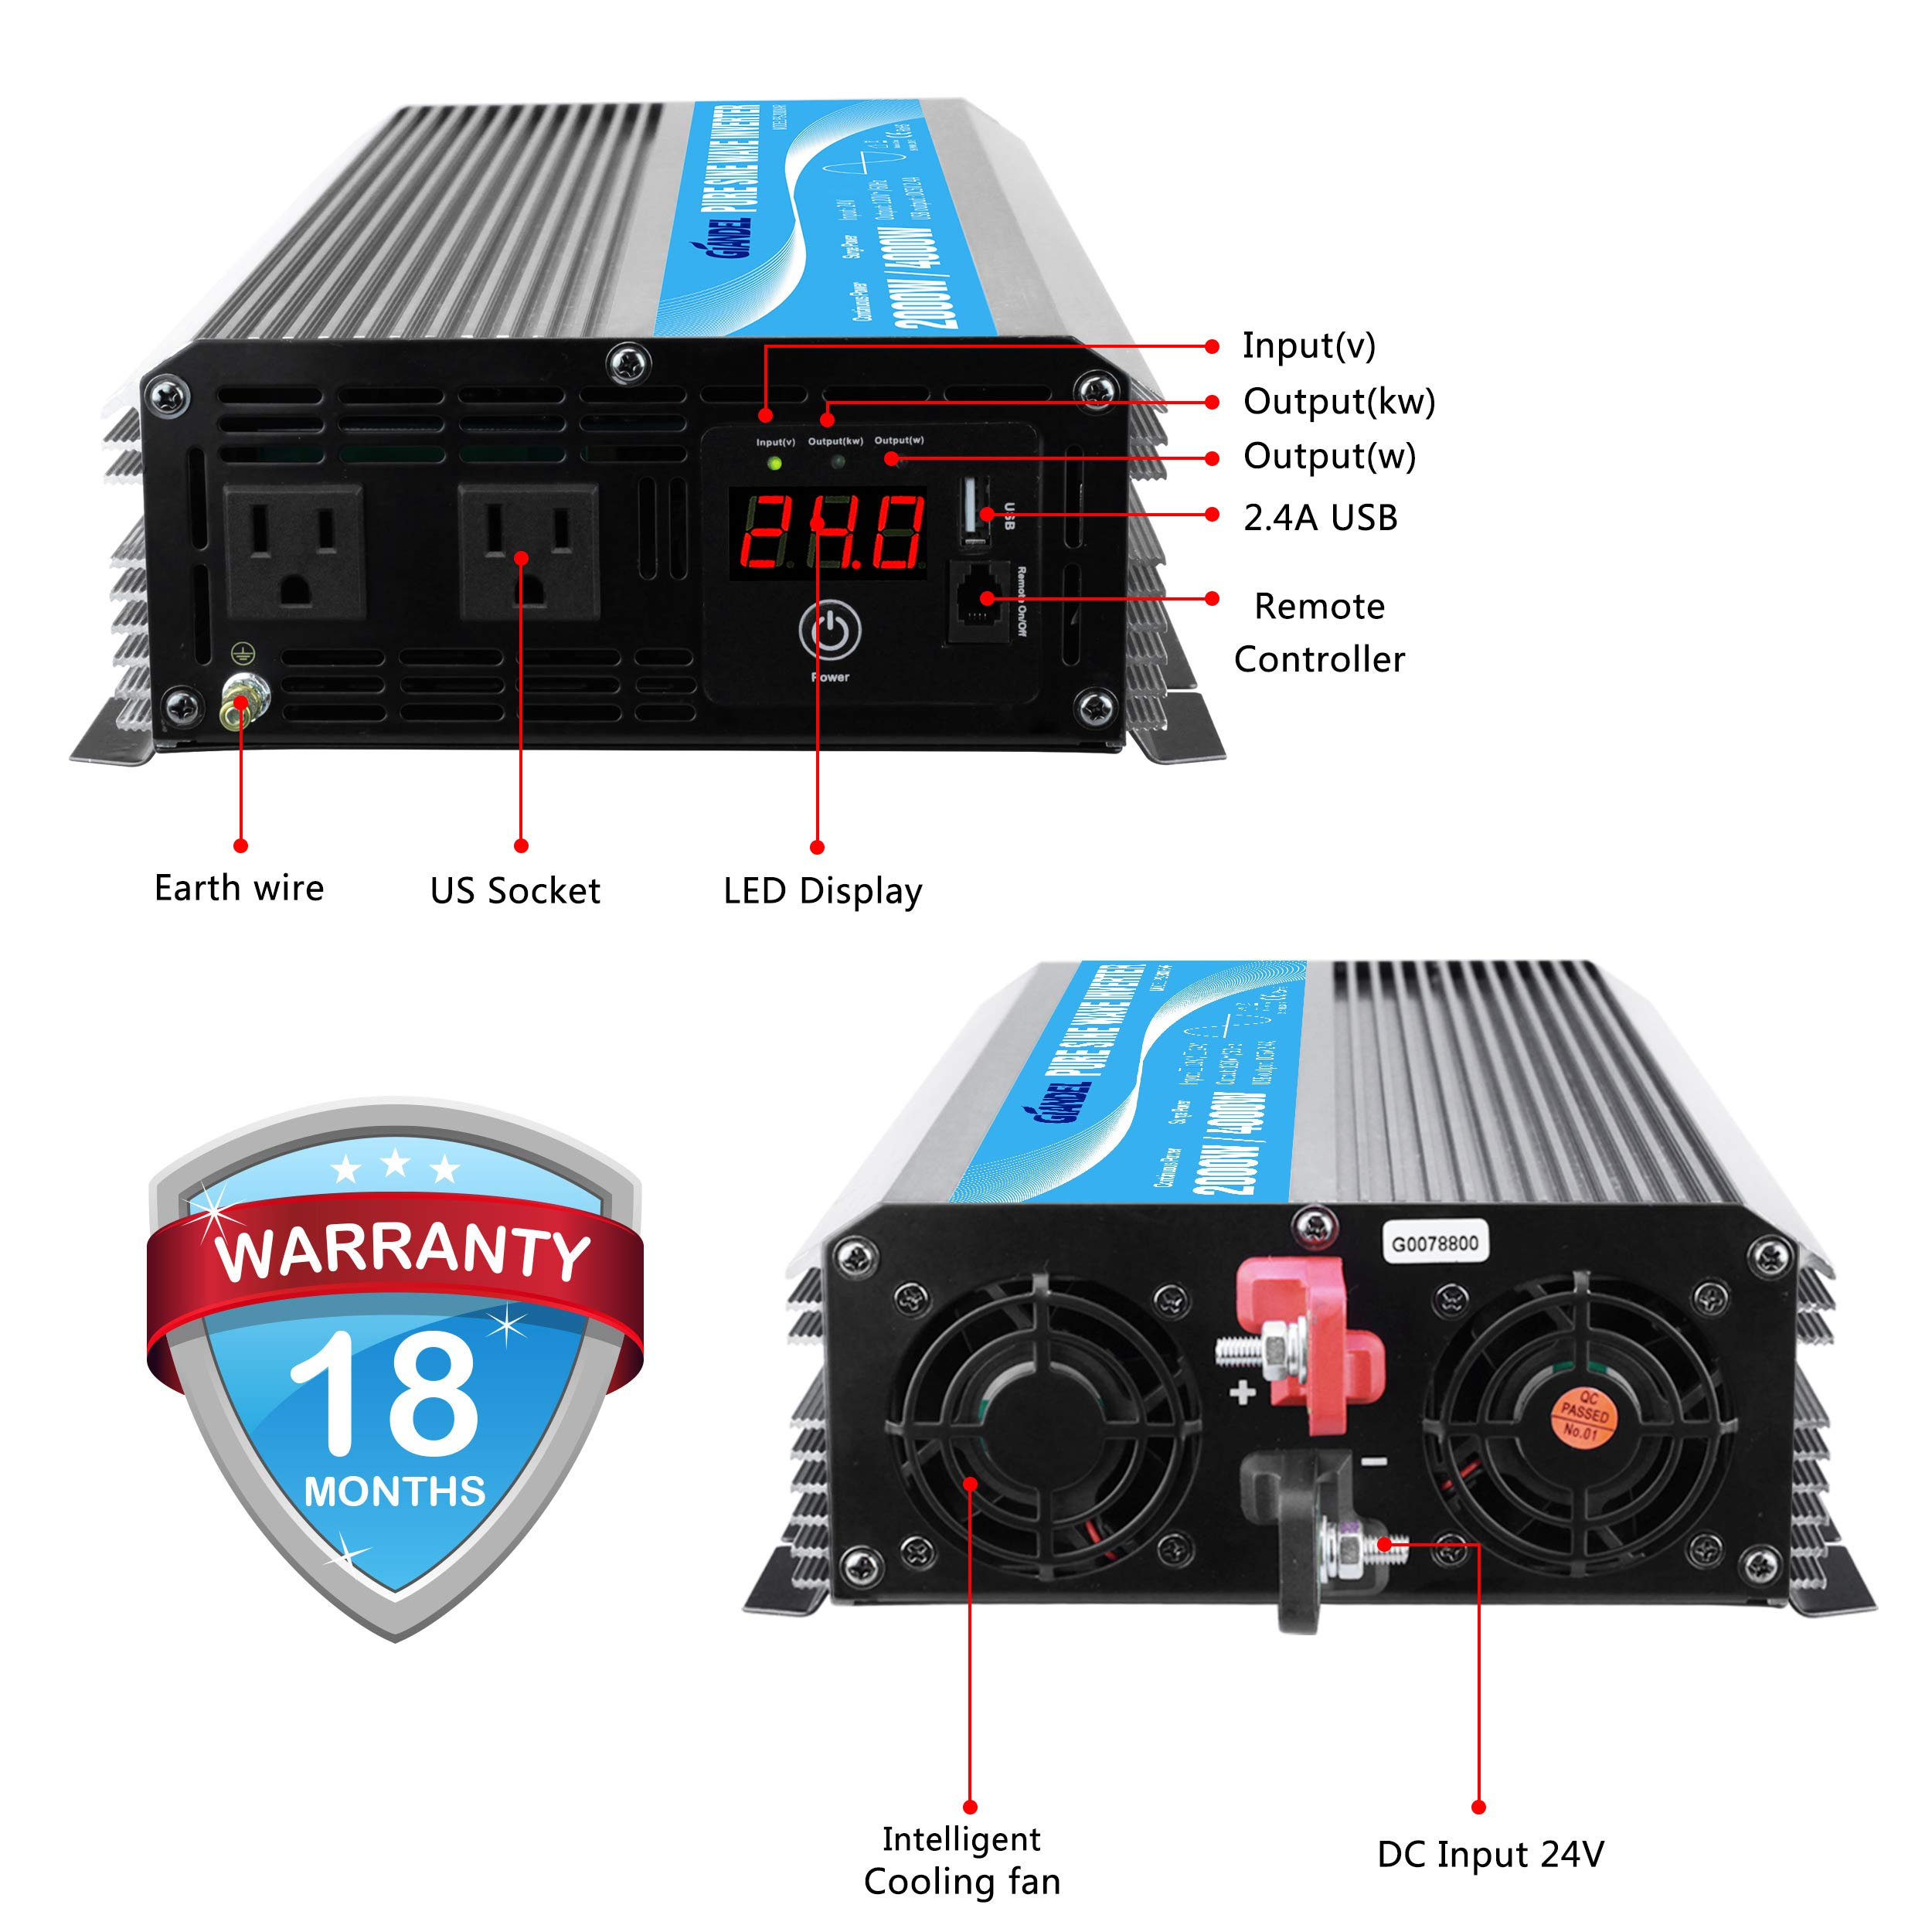 Giandel 2000W Pure Sine Wave Power Inverter DC 24V to AC120V with Dual AC Outlets with Remote Control 2.4A USB and LED Display by Giandel (Image #2)